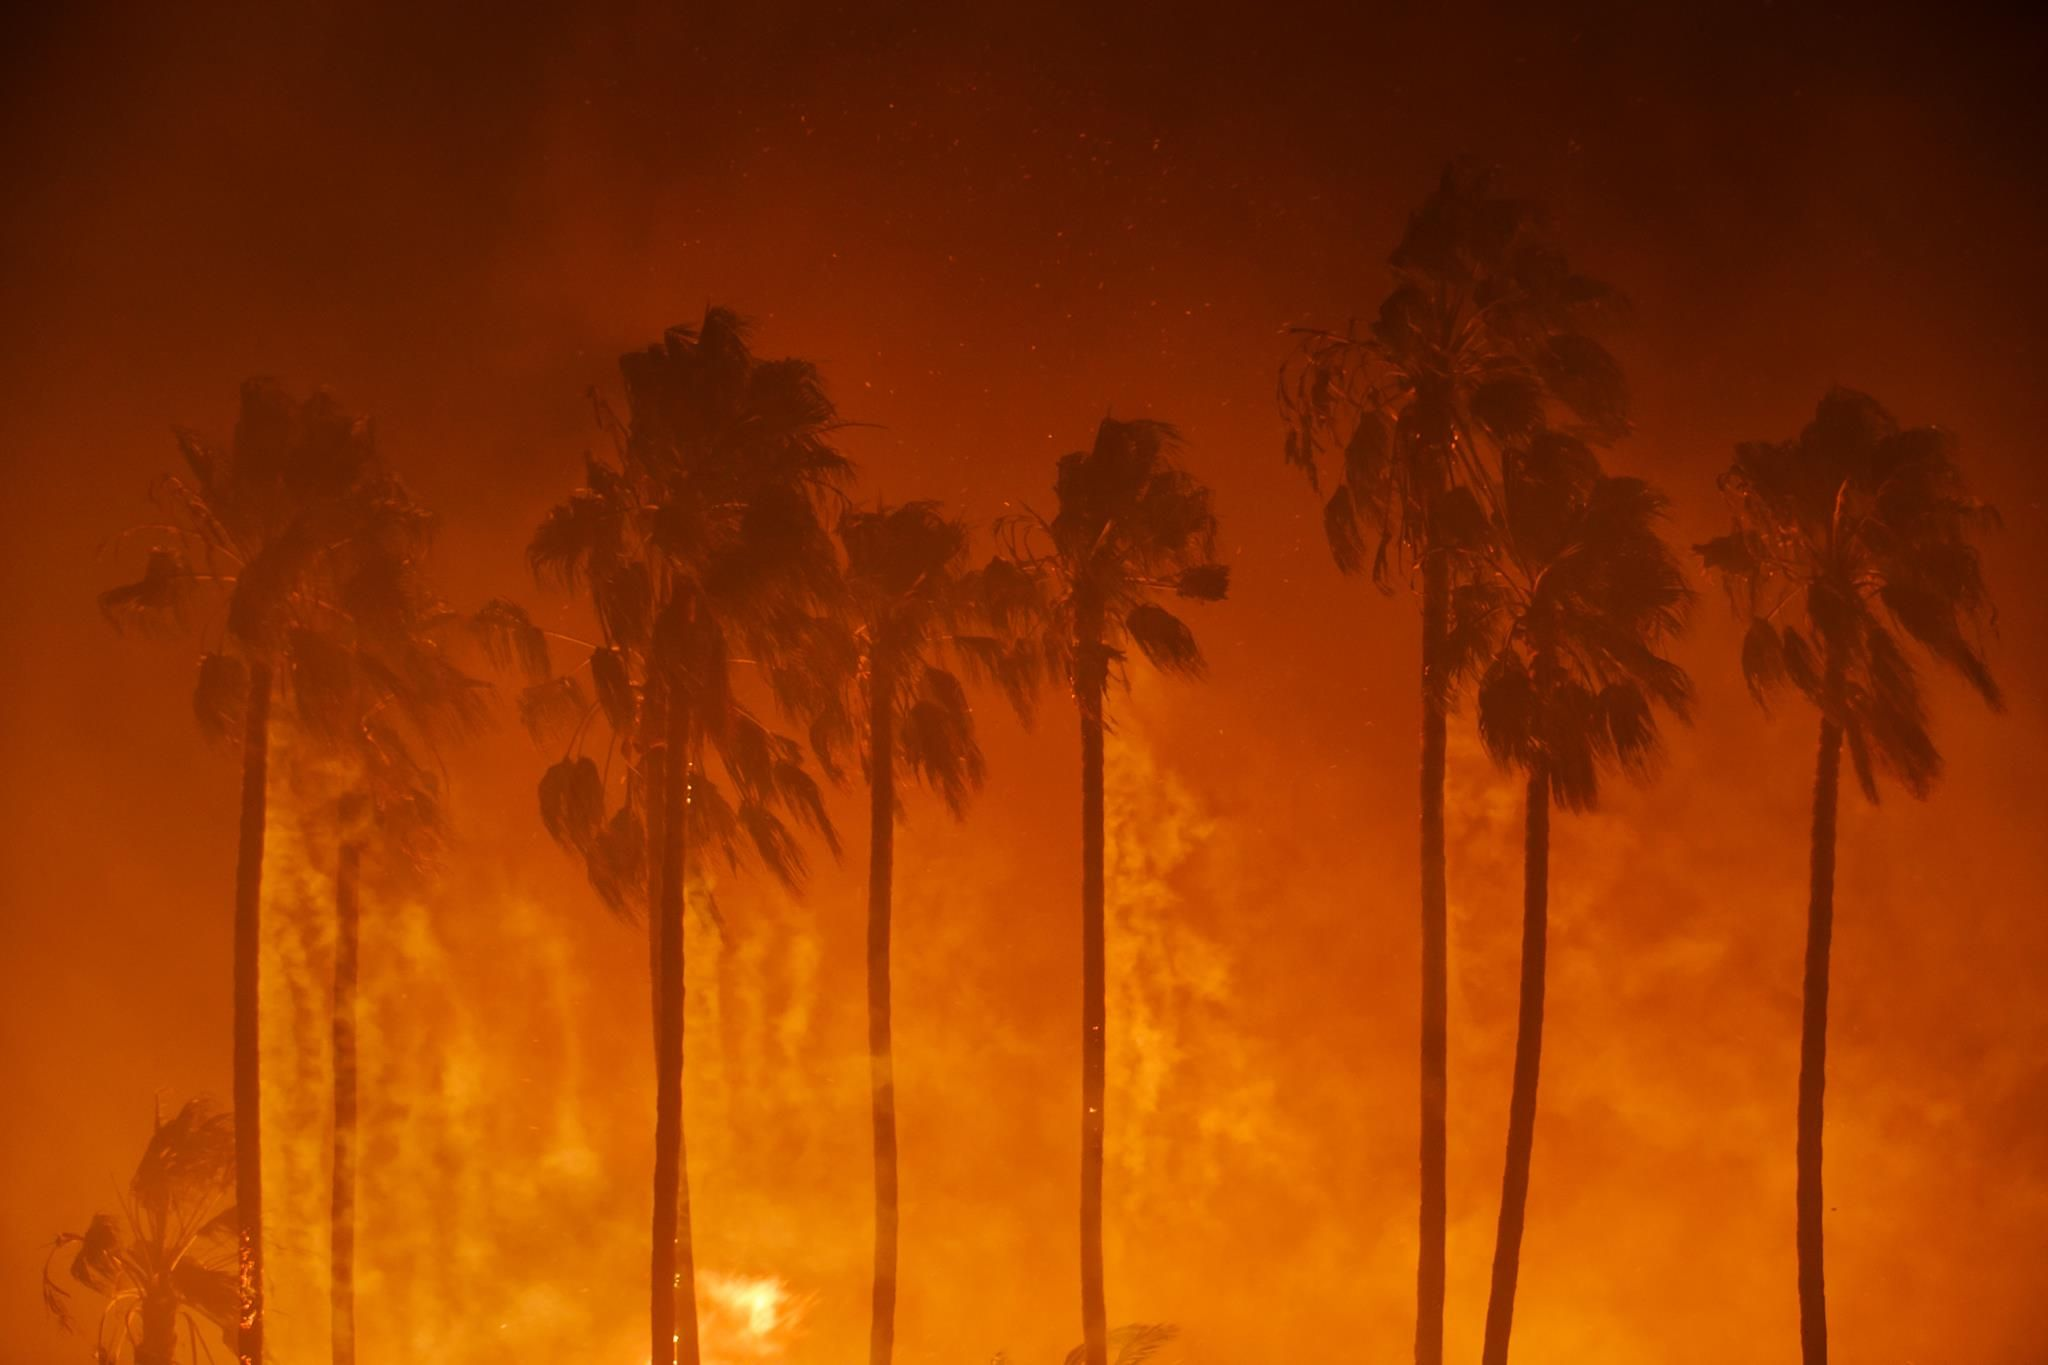 Los Angeles Times Southern California This Morning Thomas Fire In Ventura 31 000 Acres Burned 27 000 People California Wildfires Ventura Landscape